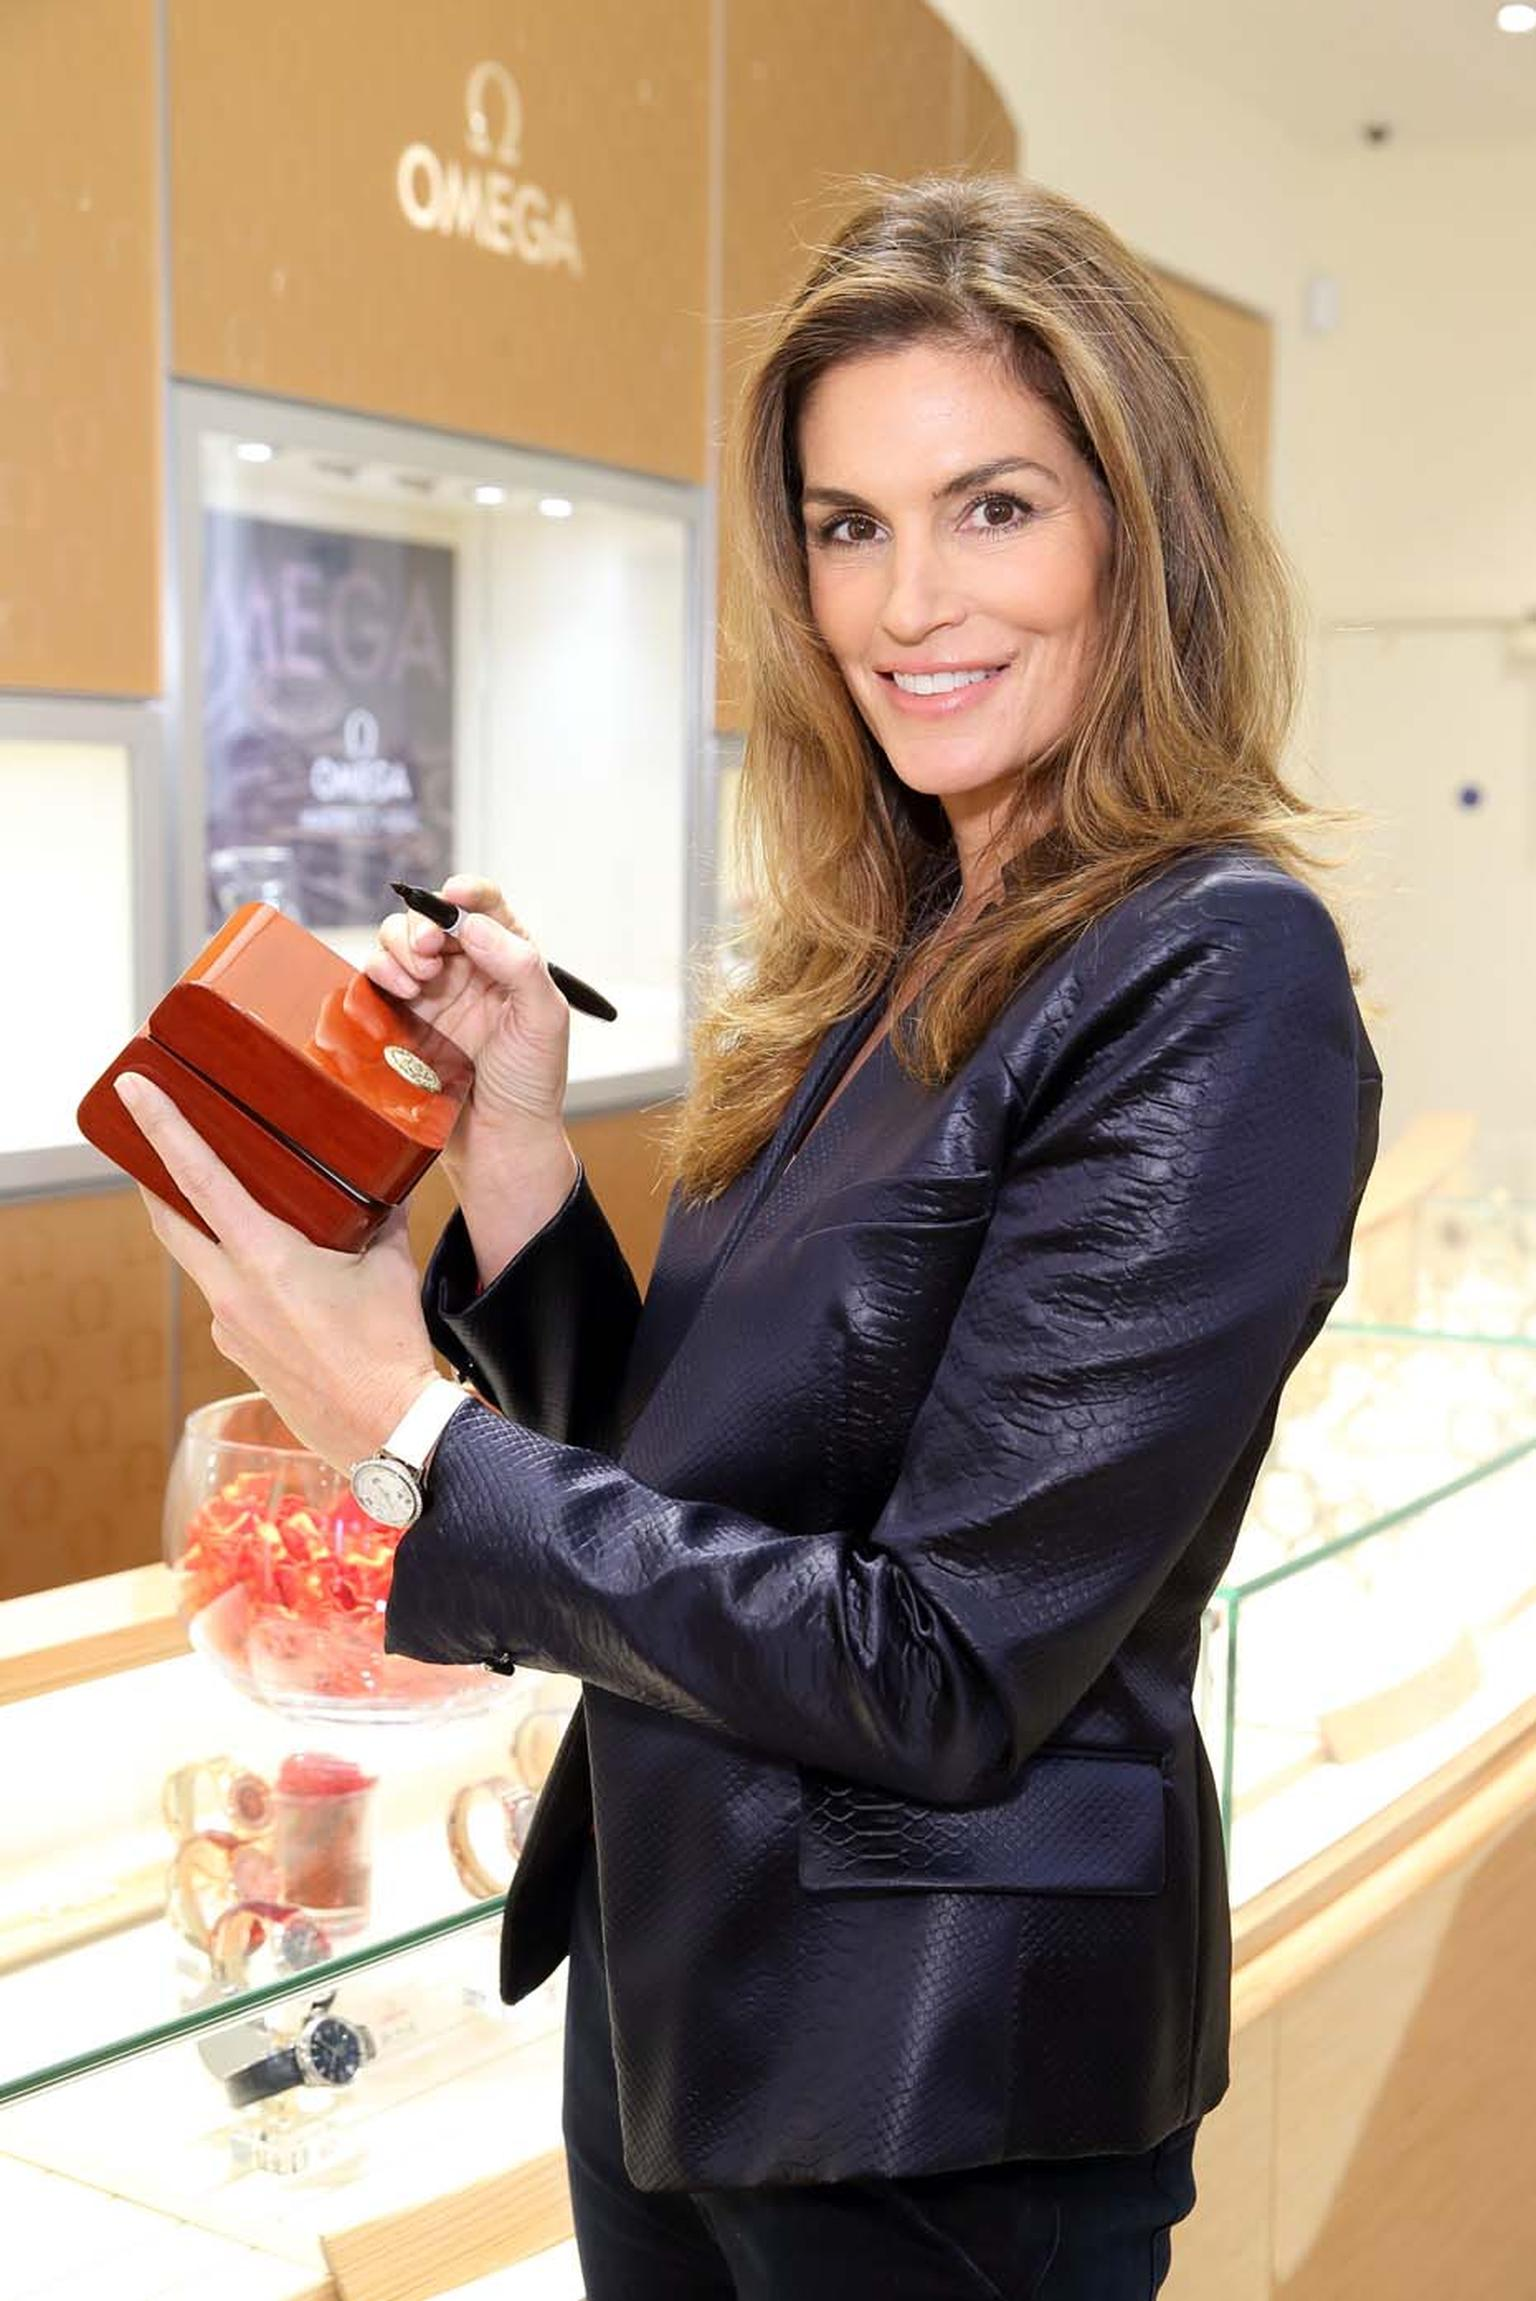 Omega's longest-standing brand ambassador, Cindy Crawford, was in London last week to open the Swiss watch house's newest boutique on Oxford Street.